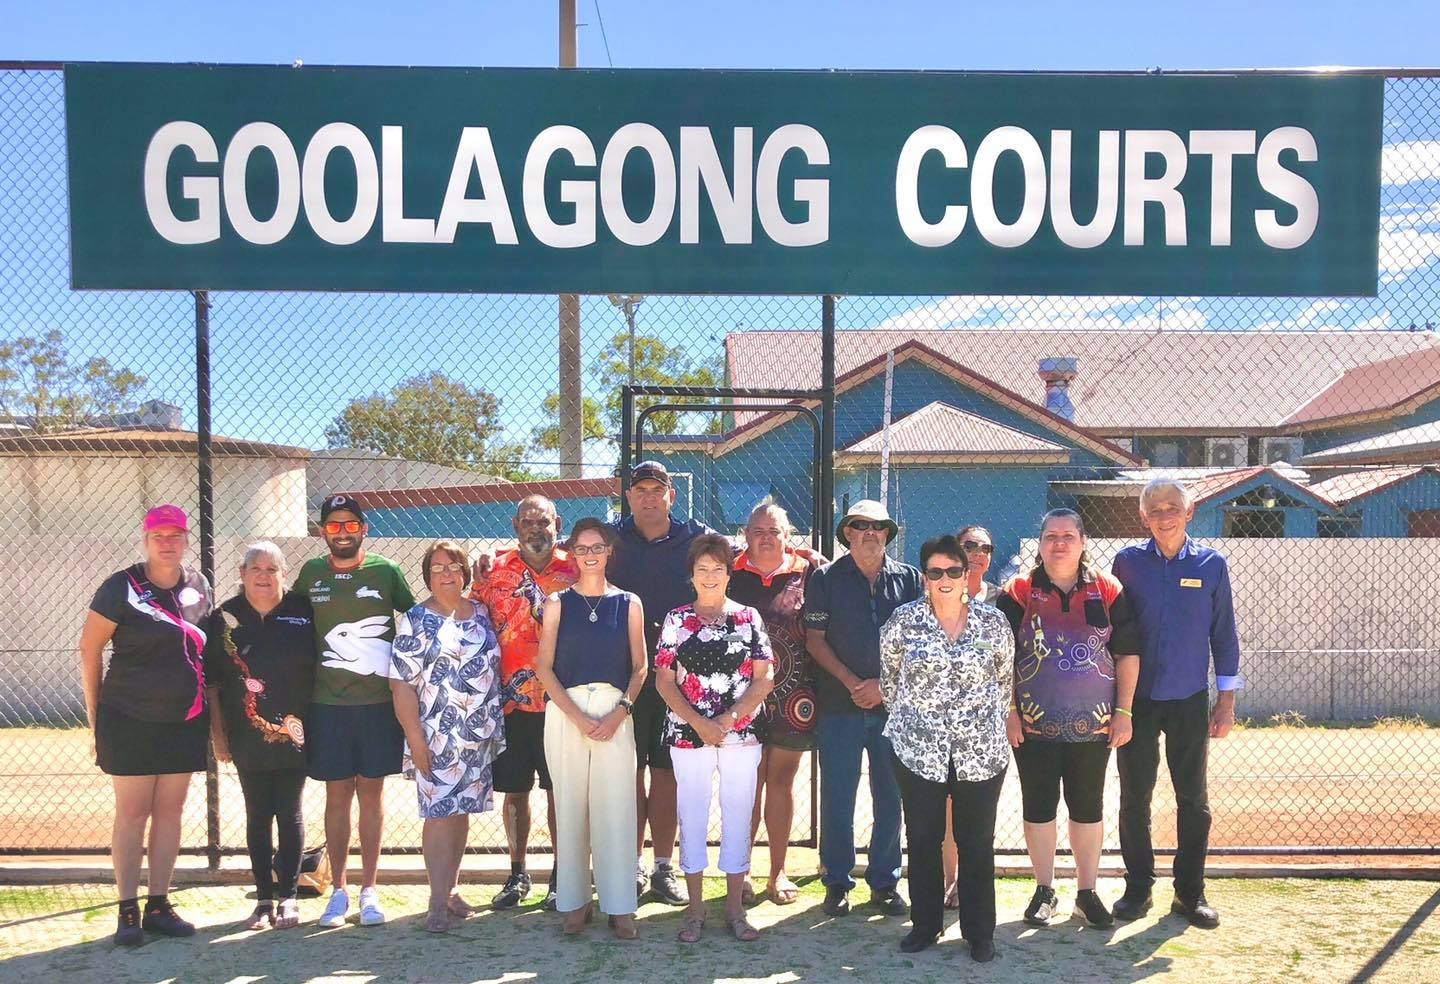 Steph Cooke stands with members of the community and the Goolagong family in front of a fence and sign that reads Goolagong Courts.